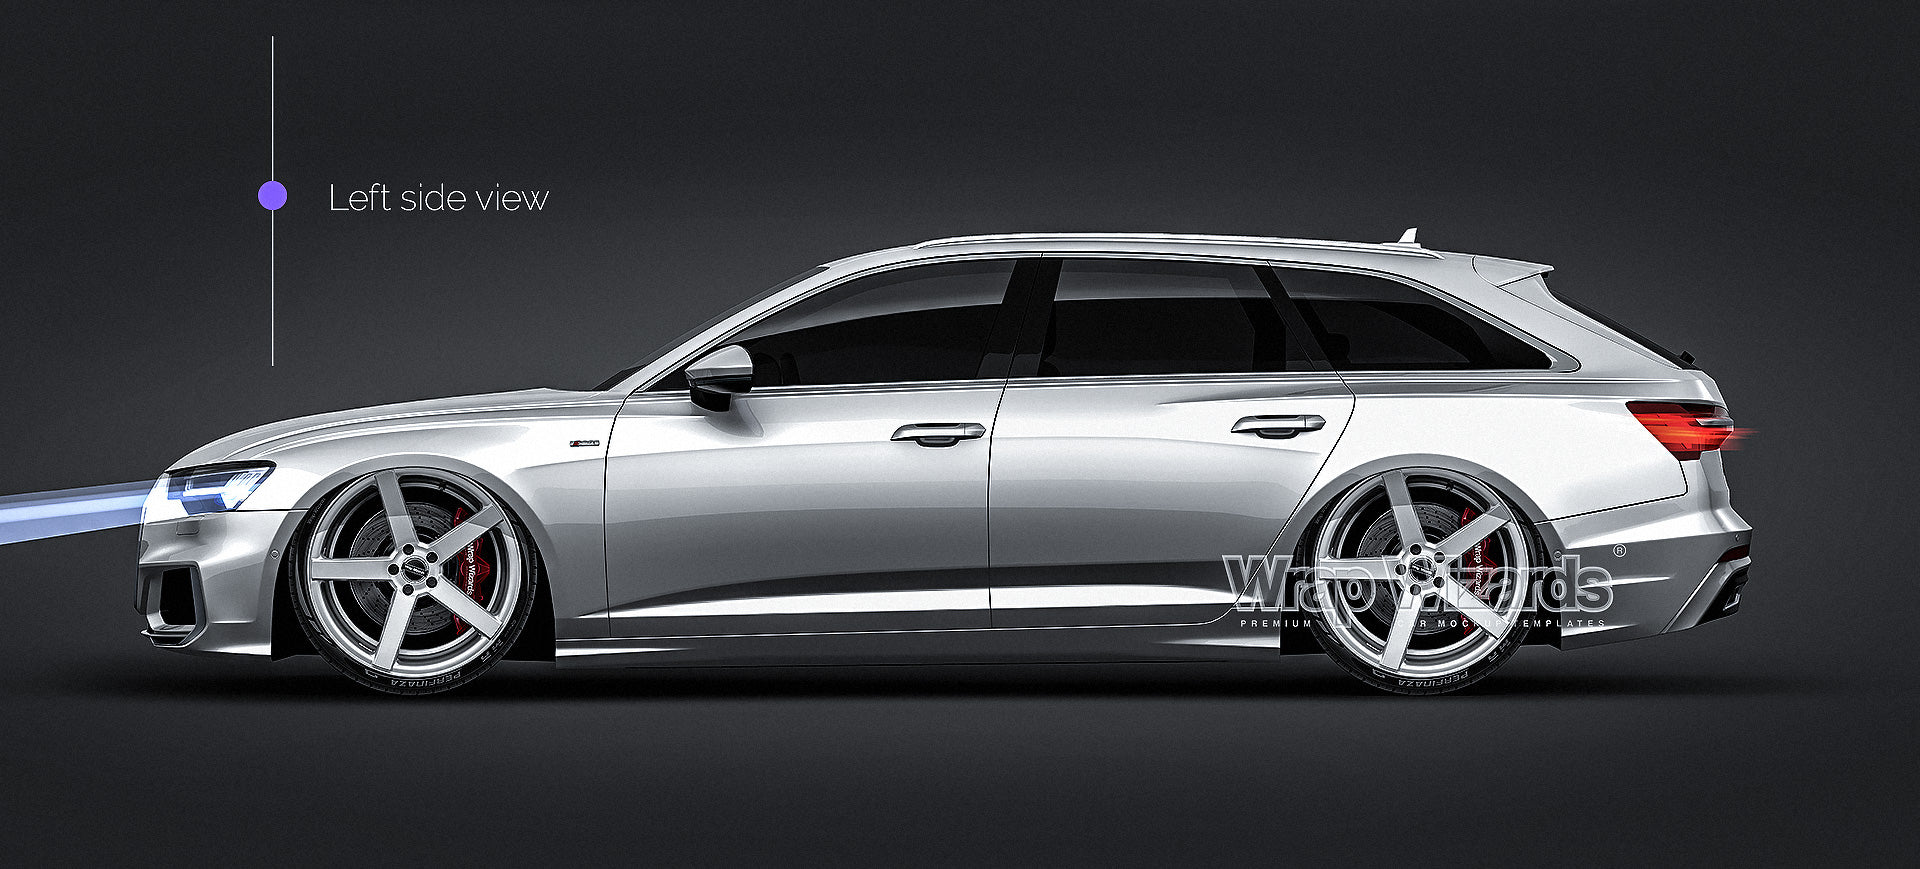 Audi A6 Avant S-line 2019 glossy finish - all sides Car Mockup Template.psd